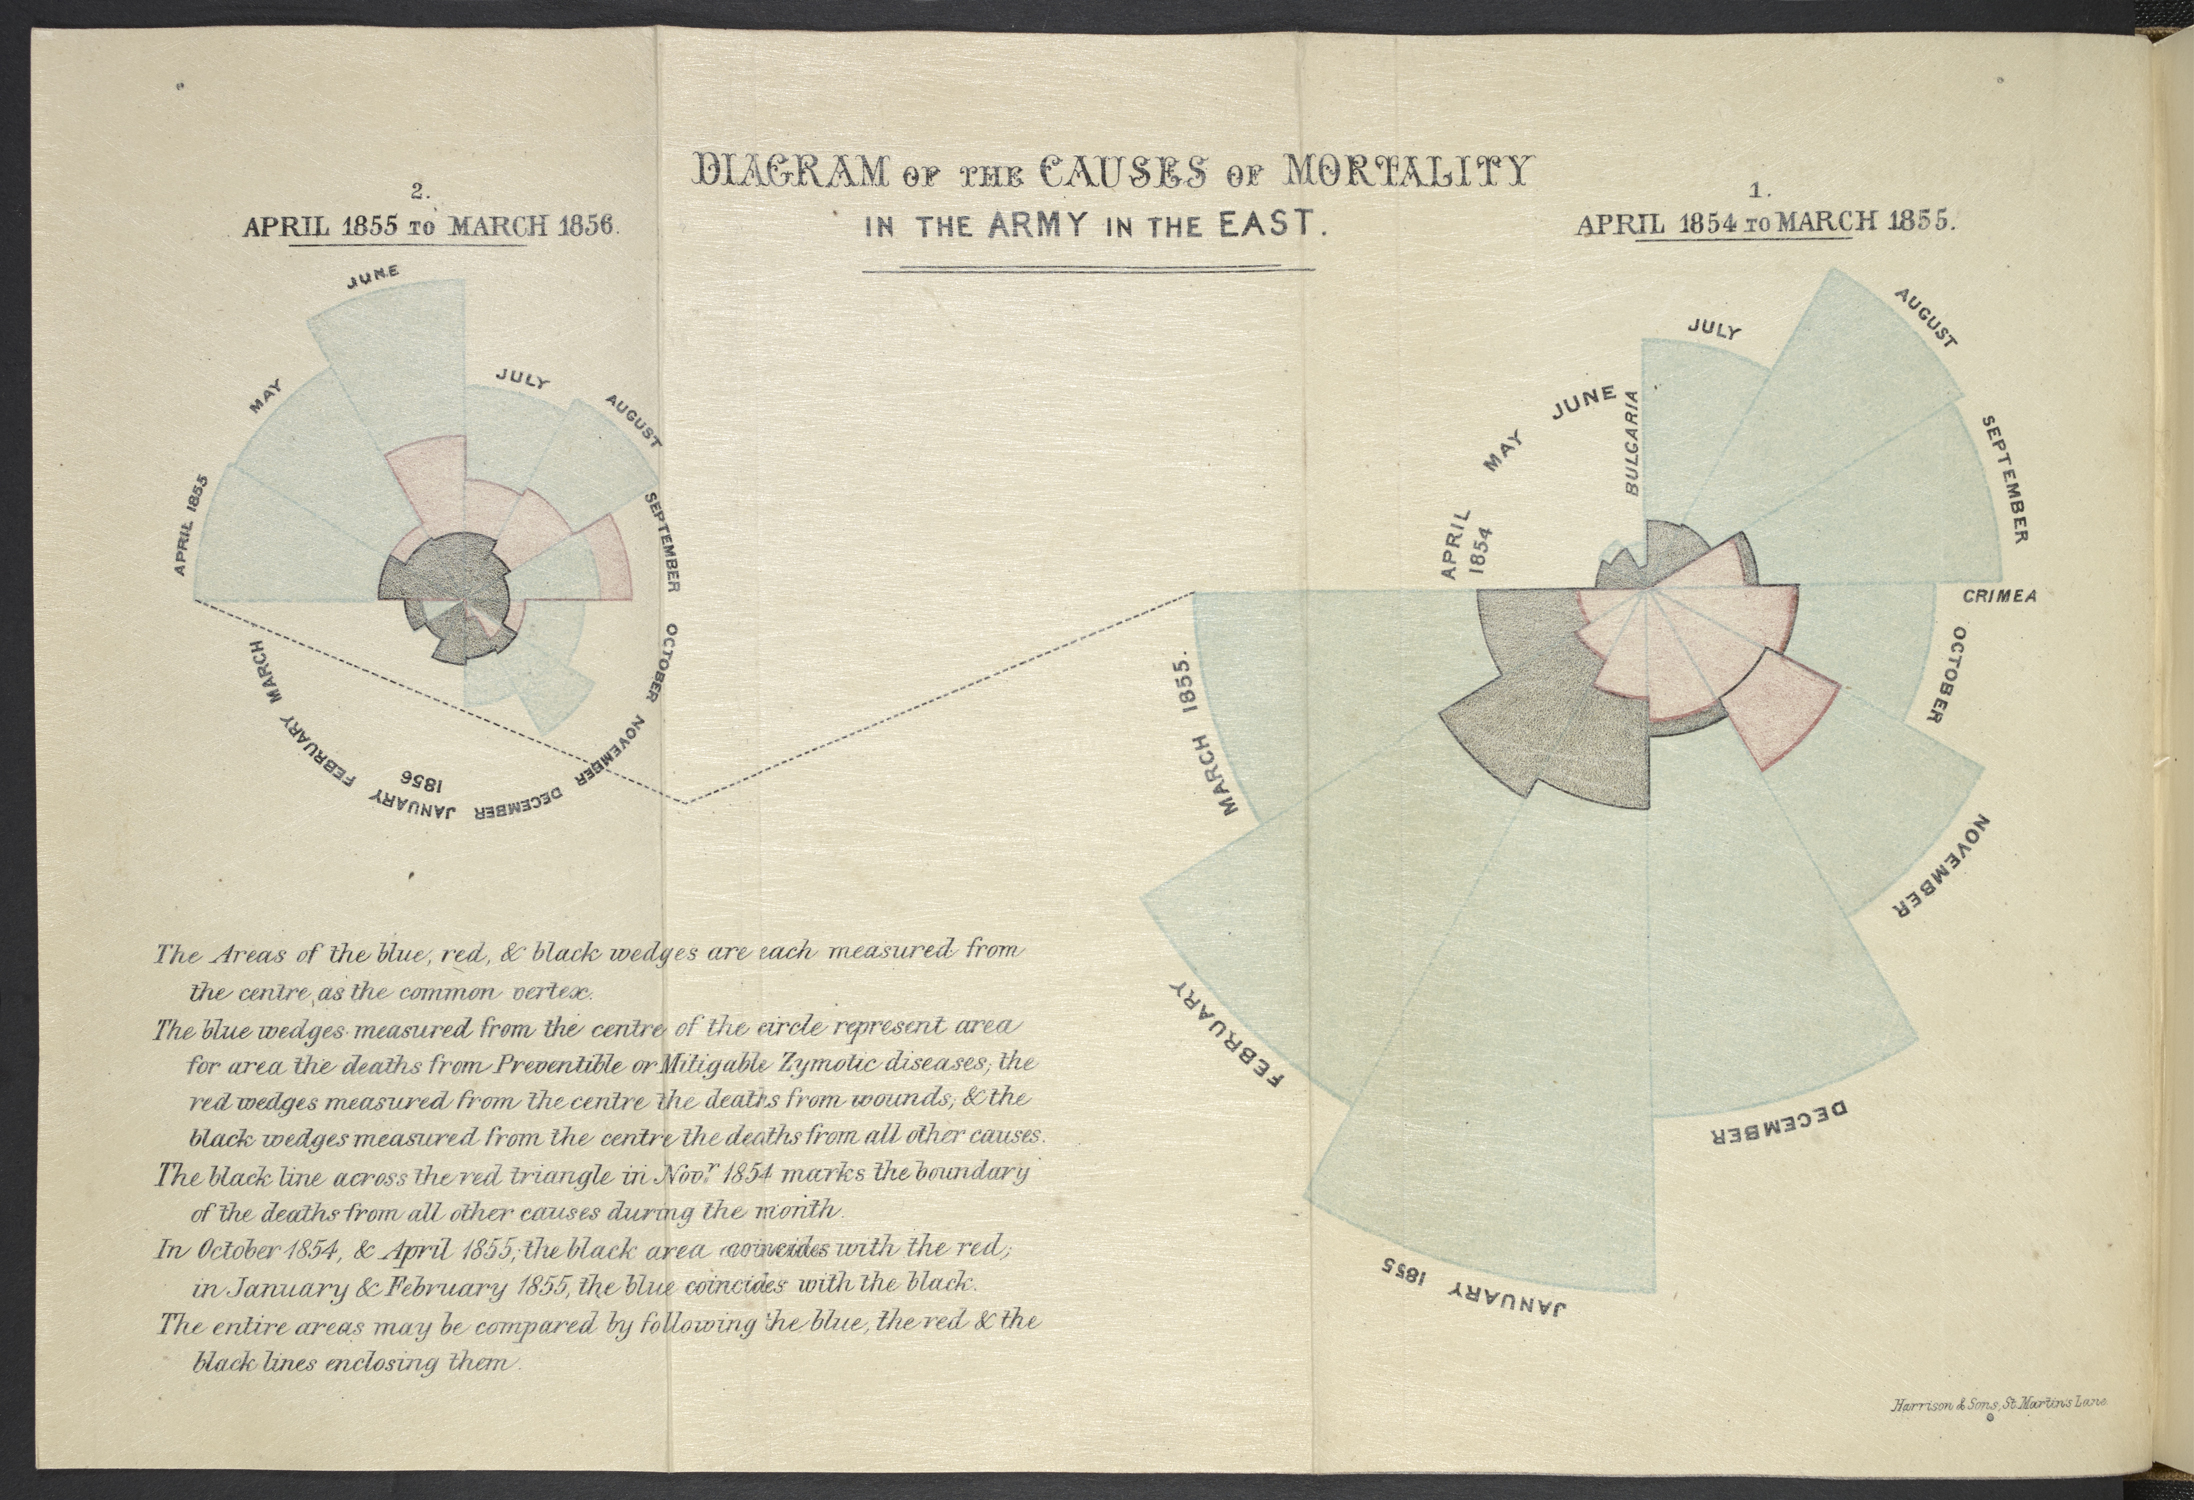 Diagram of the Causes of Mortality in the Army in the East Florence Nightingale on display in Beautiful Science. Notes on matters affecting the health efficiency and hospital administration of the British Army. London 1858.